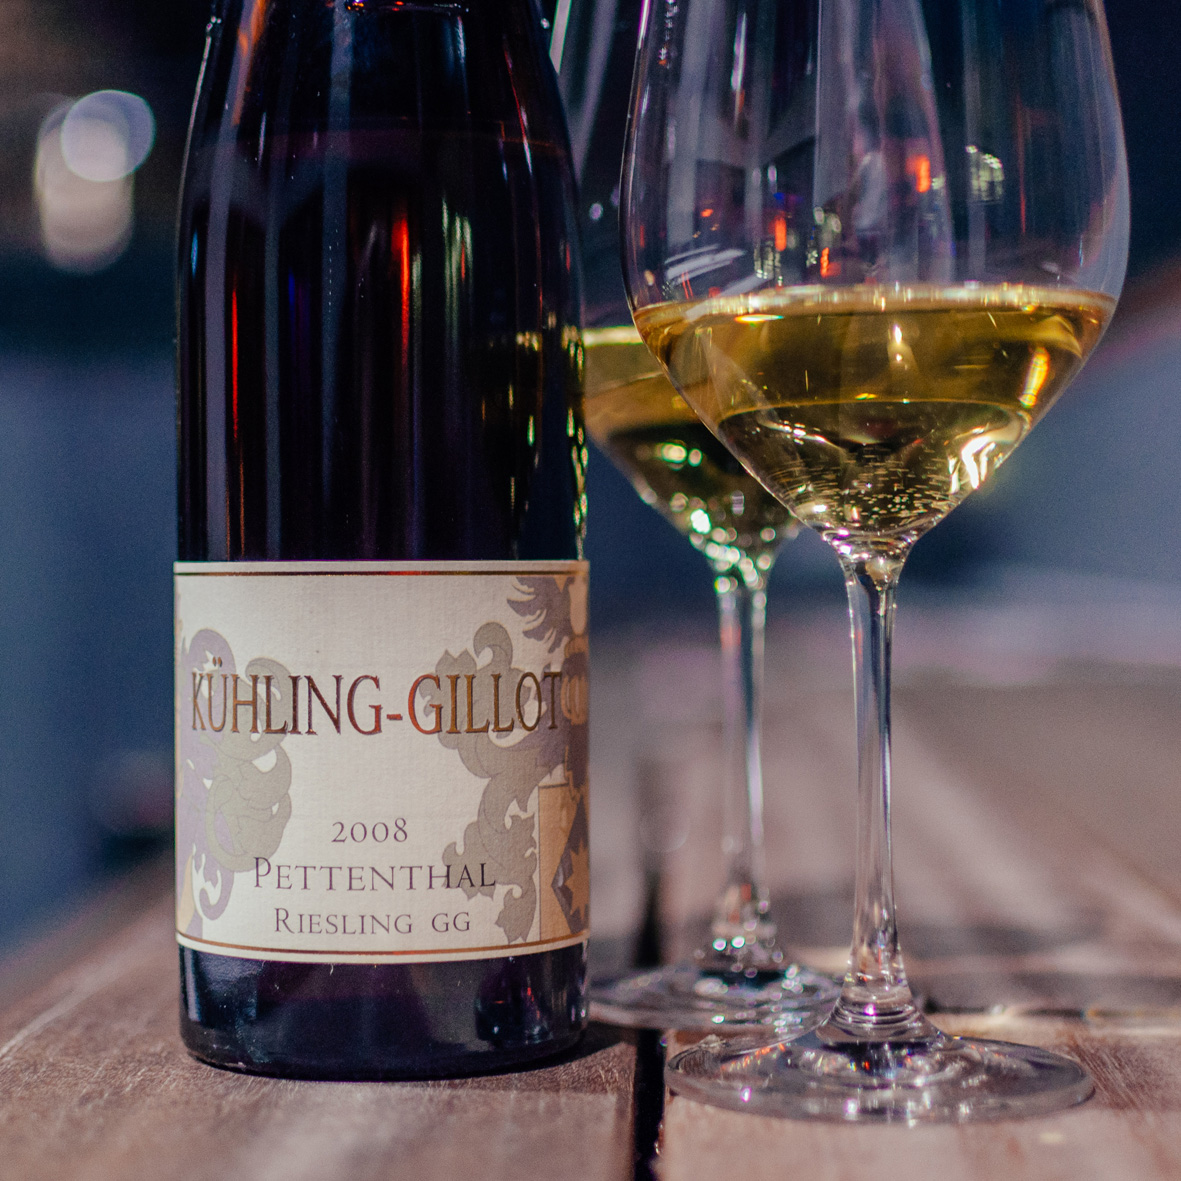 AskToni-Sipgate-Party-Kuehling-Gillot-Pettenthal-Riesling.jpg